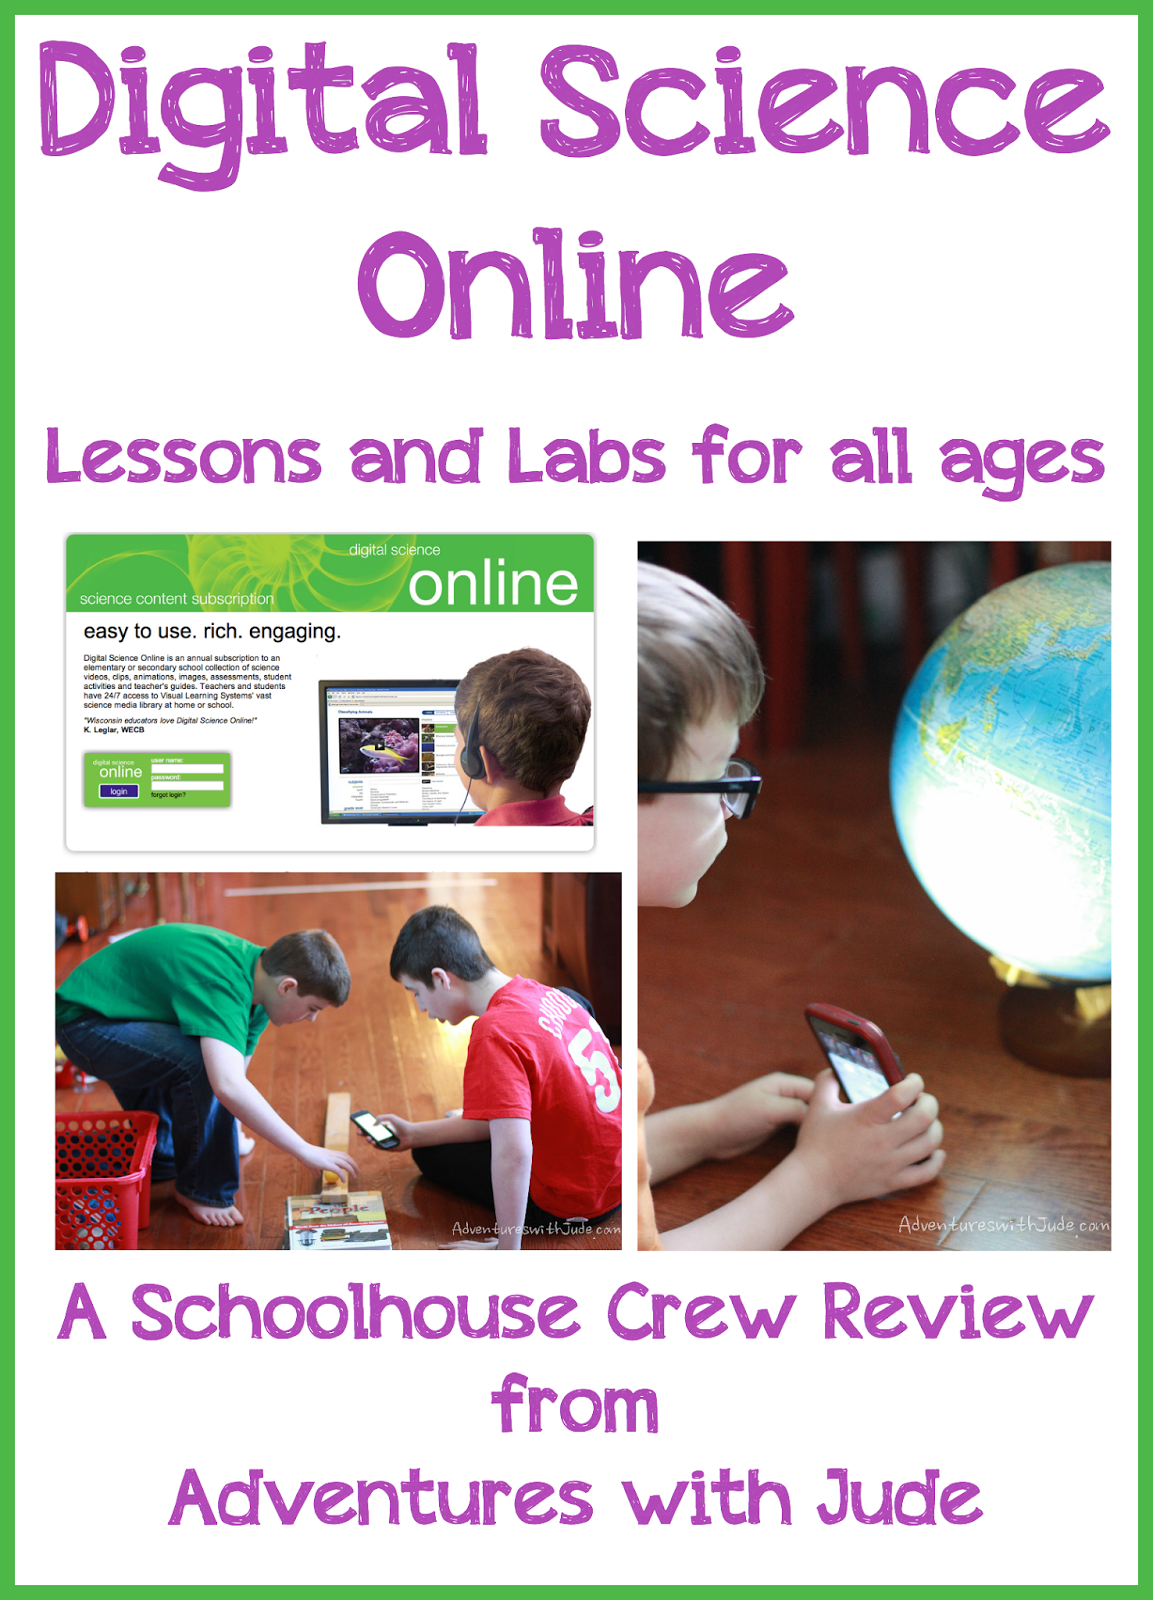 Digital Science Online Lessons and Labs for all ages Schoolhouse Crew Review